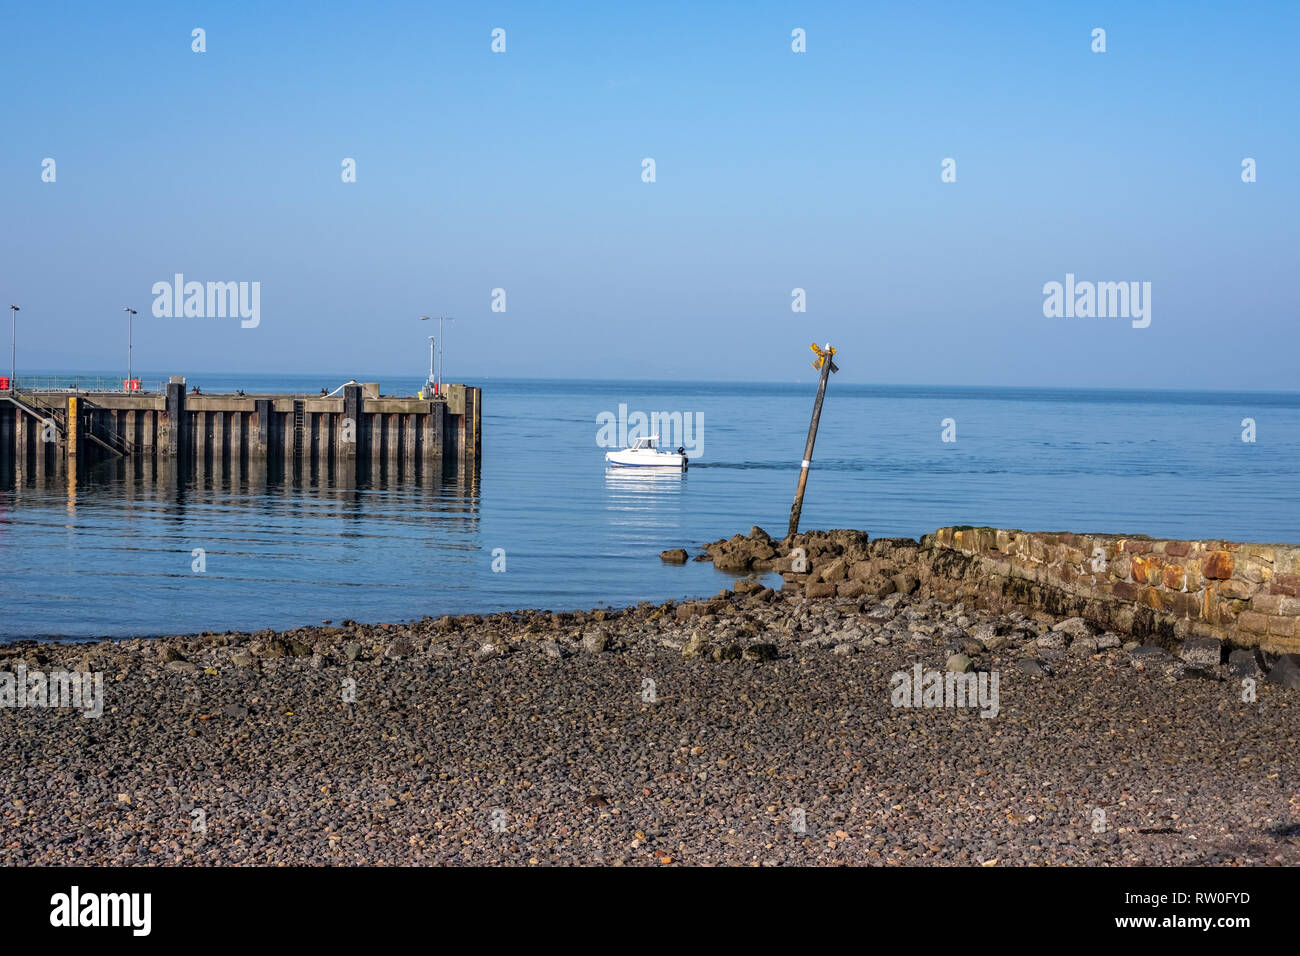 Unusually warm February weather for Largs Pier and a small white boat on the West coast of Scotland with bright blue sky and temperature of 16 °C. - Stock Image